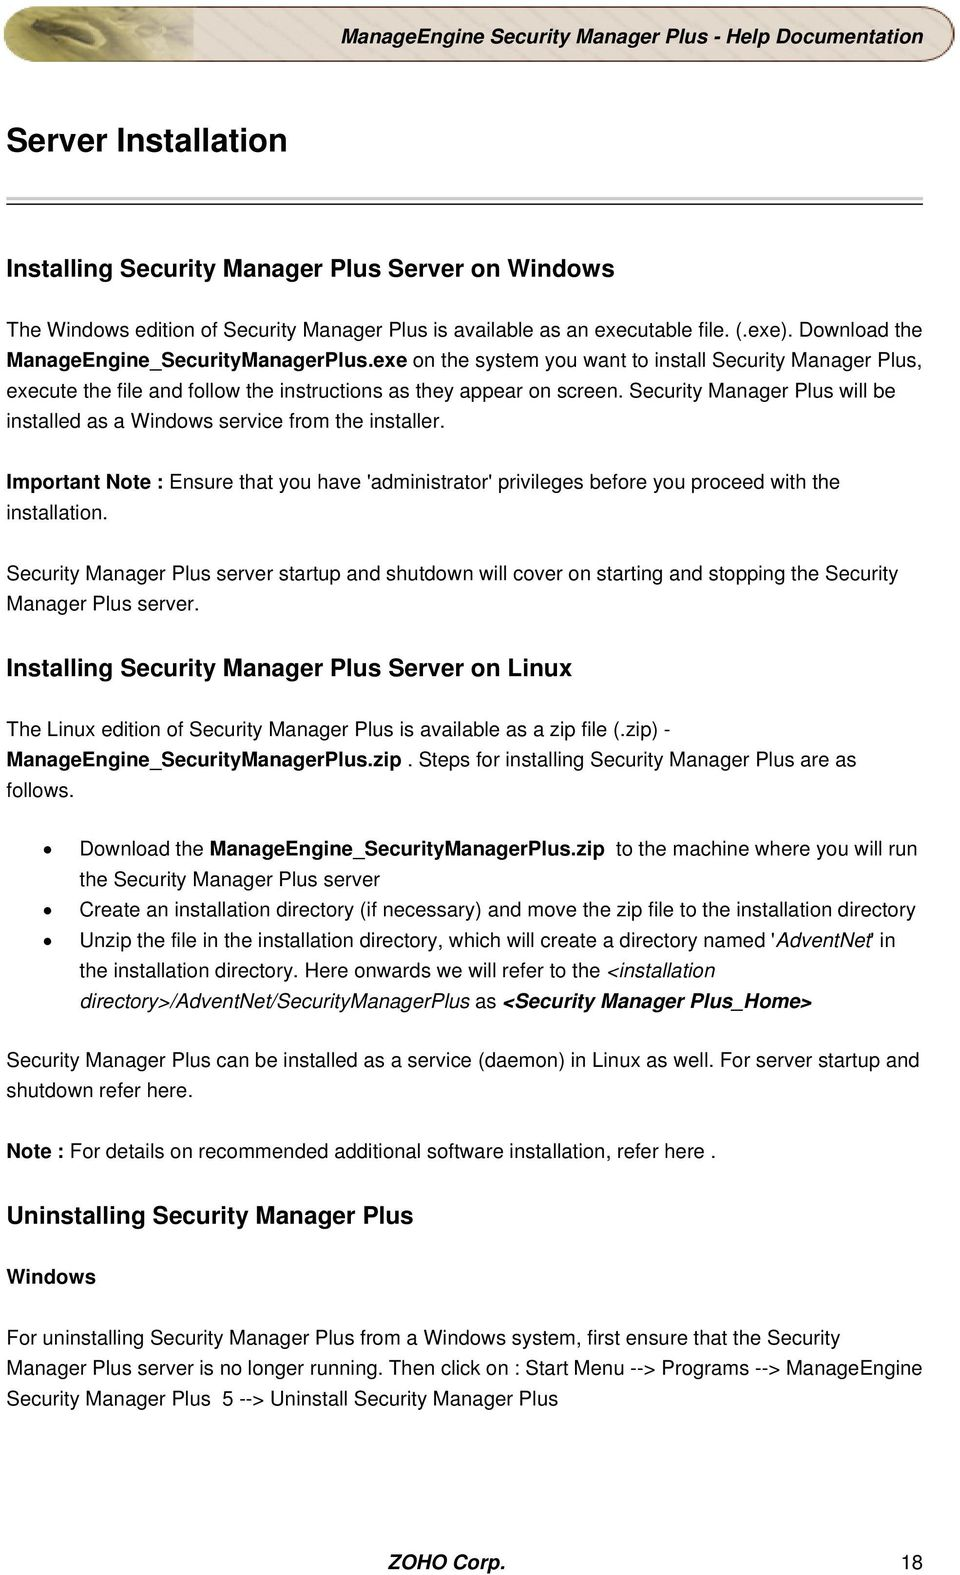 Security Manager Plus will be installed as a Windows service from the installer. Important Note : Ensure that you have 'administrator' privileges before you proceed with the installation.